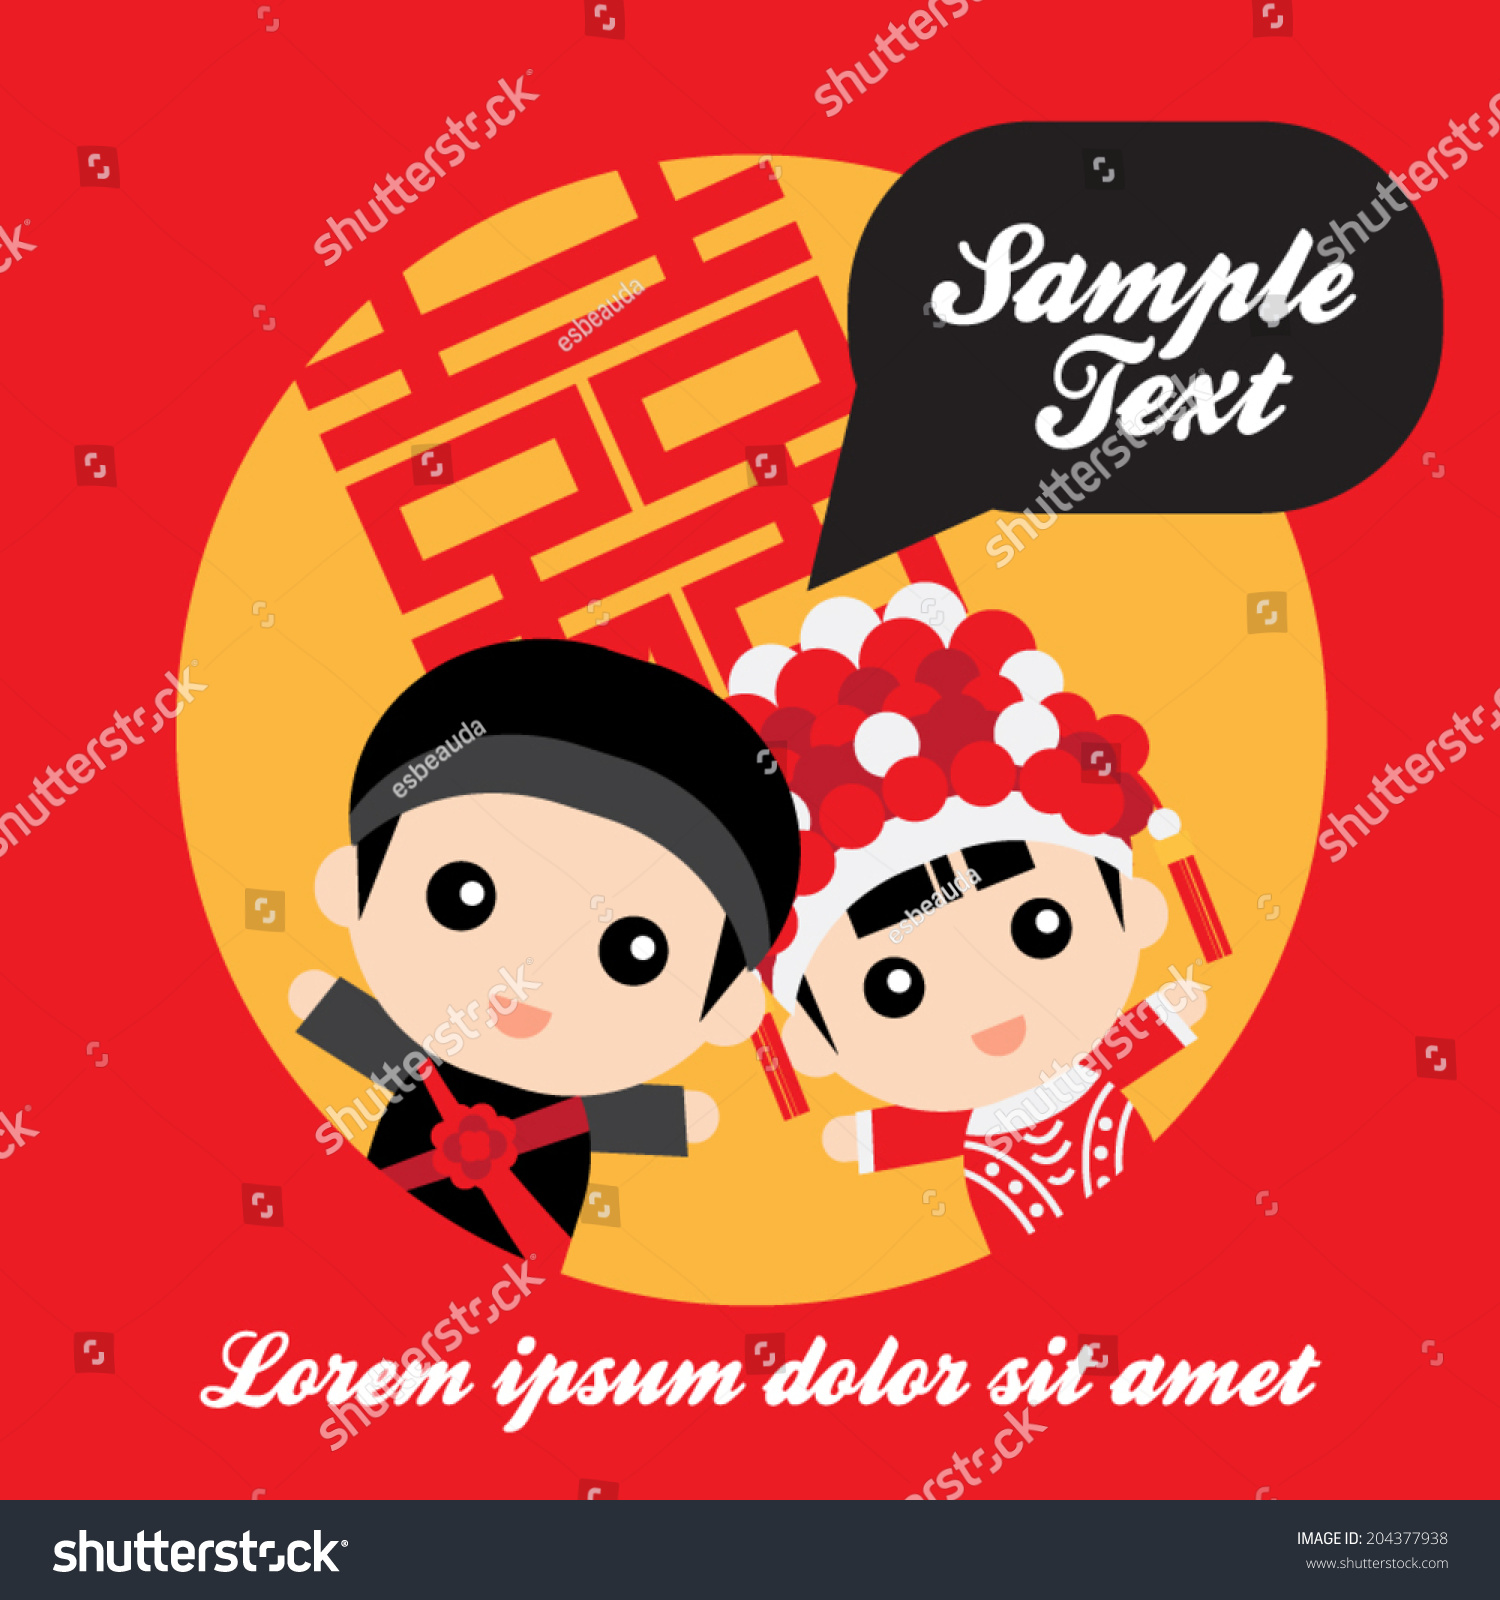 Wedding clipart traditional Traditional Illustration clipart Couple wedding